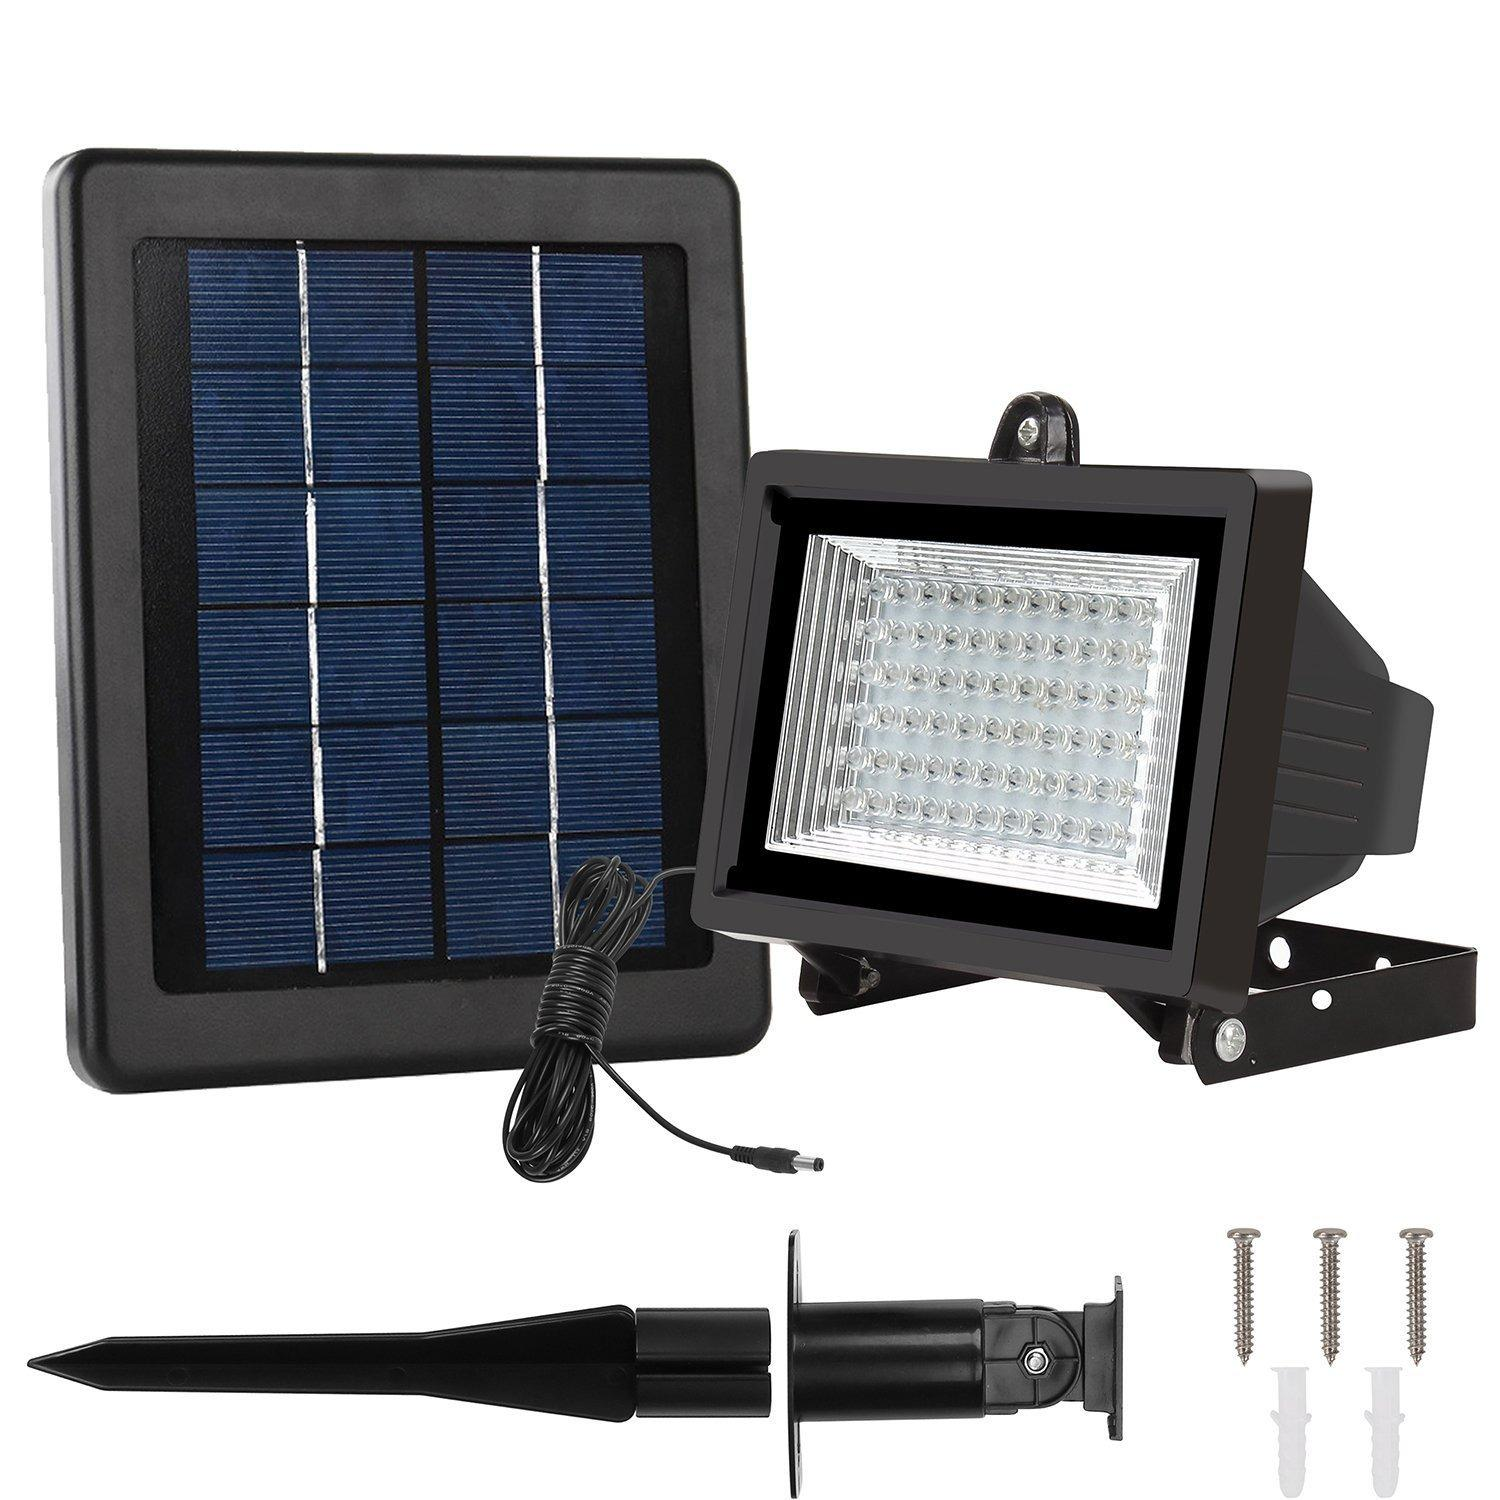 Solar Philippines Price List Led Light Set For Sale Lazada Automatic Street Ldr Circuit 60 Lights Outdoor Security Floodlight 300 Lumen Ip65 Waterproof Auto